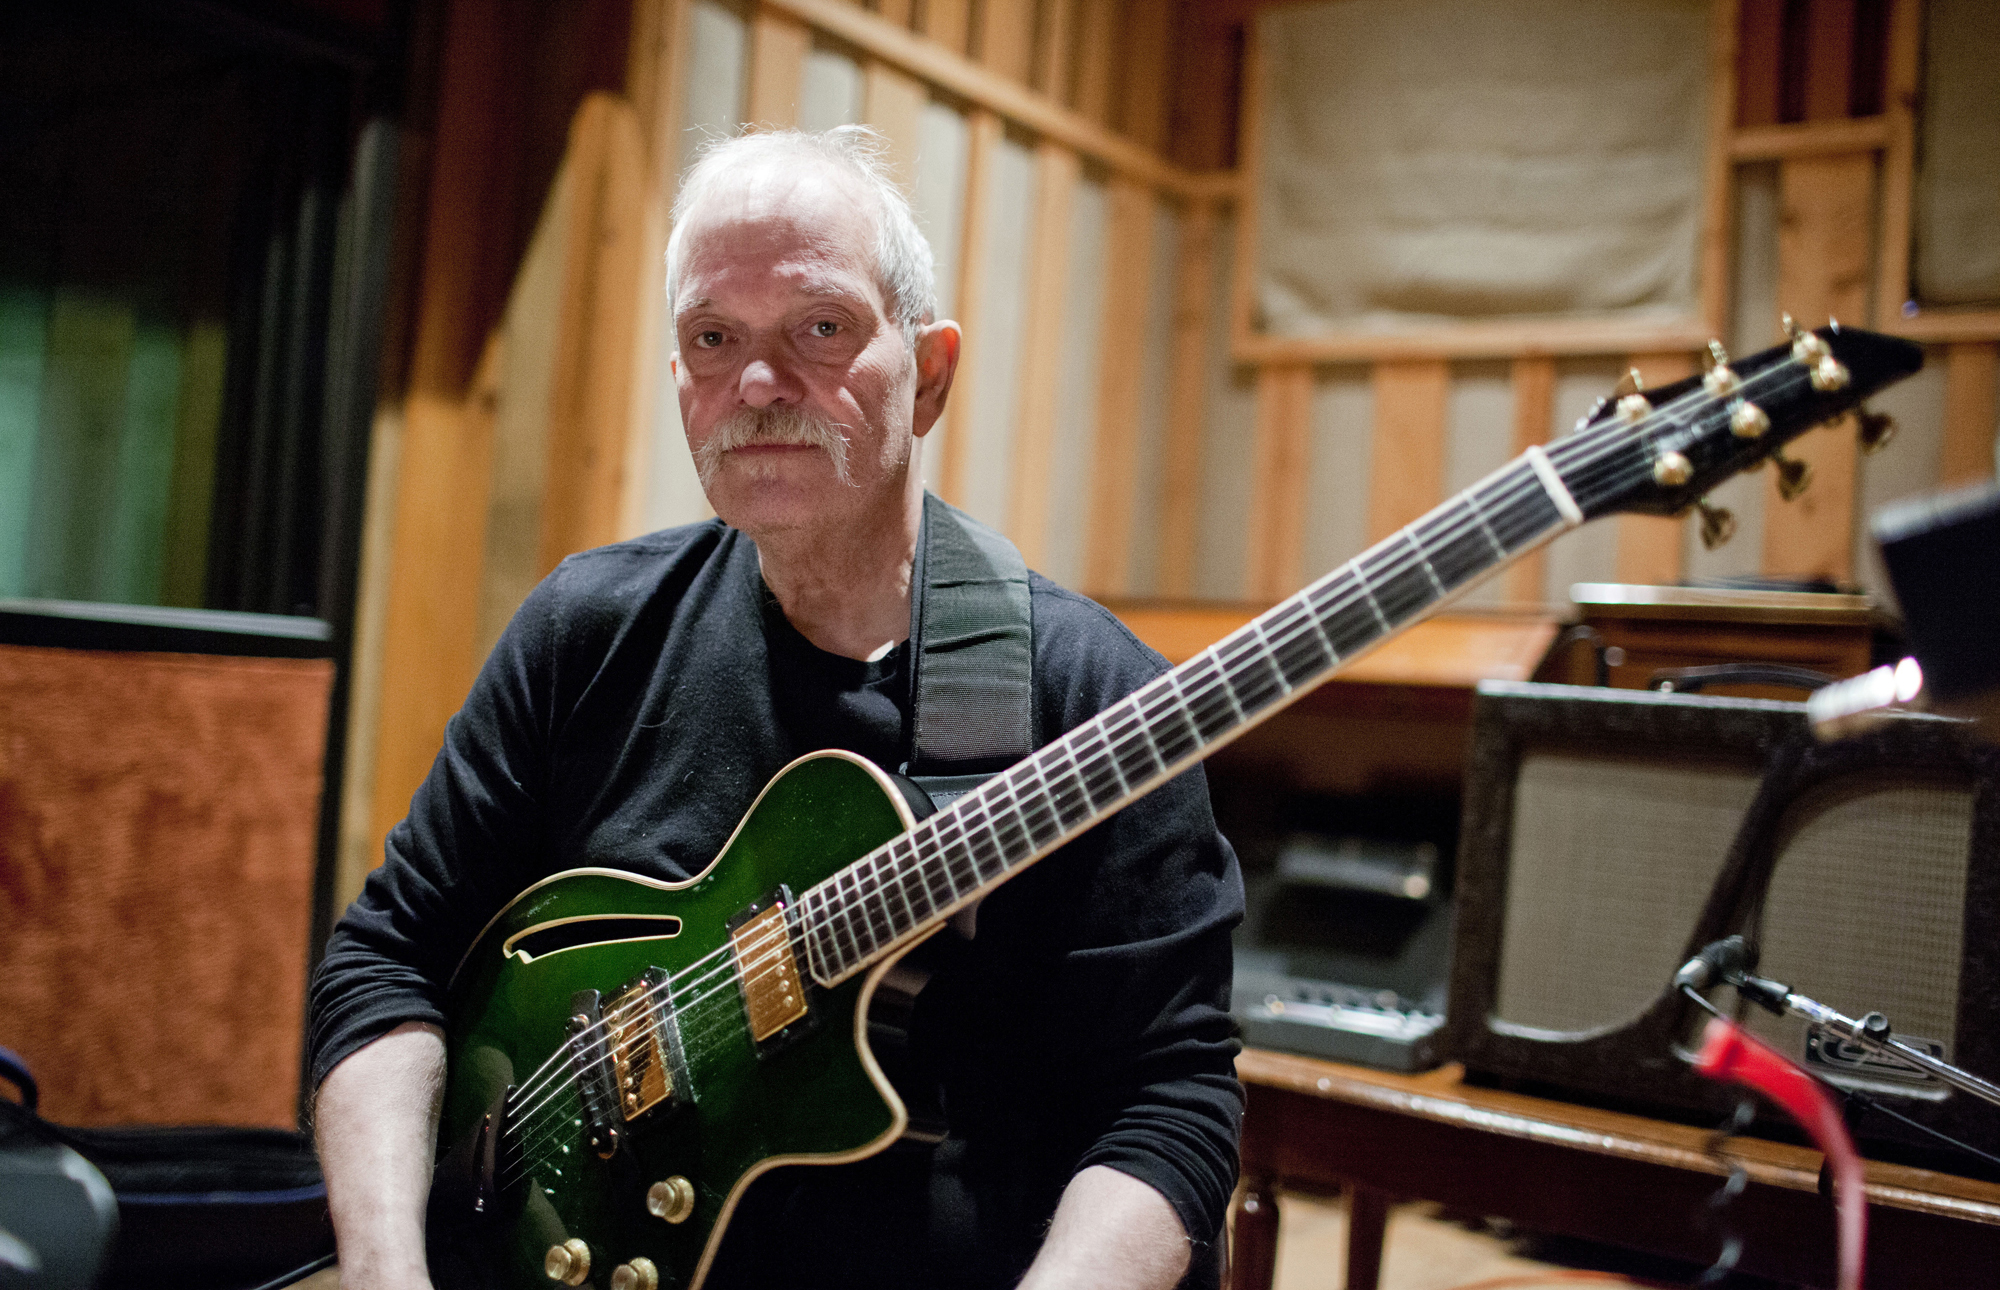 John Abercrombie and his guitar (Photo by John Rogers, courtesy ECM)